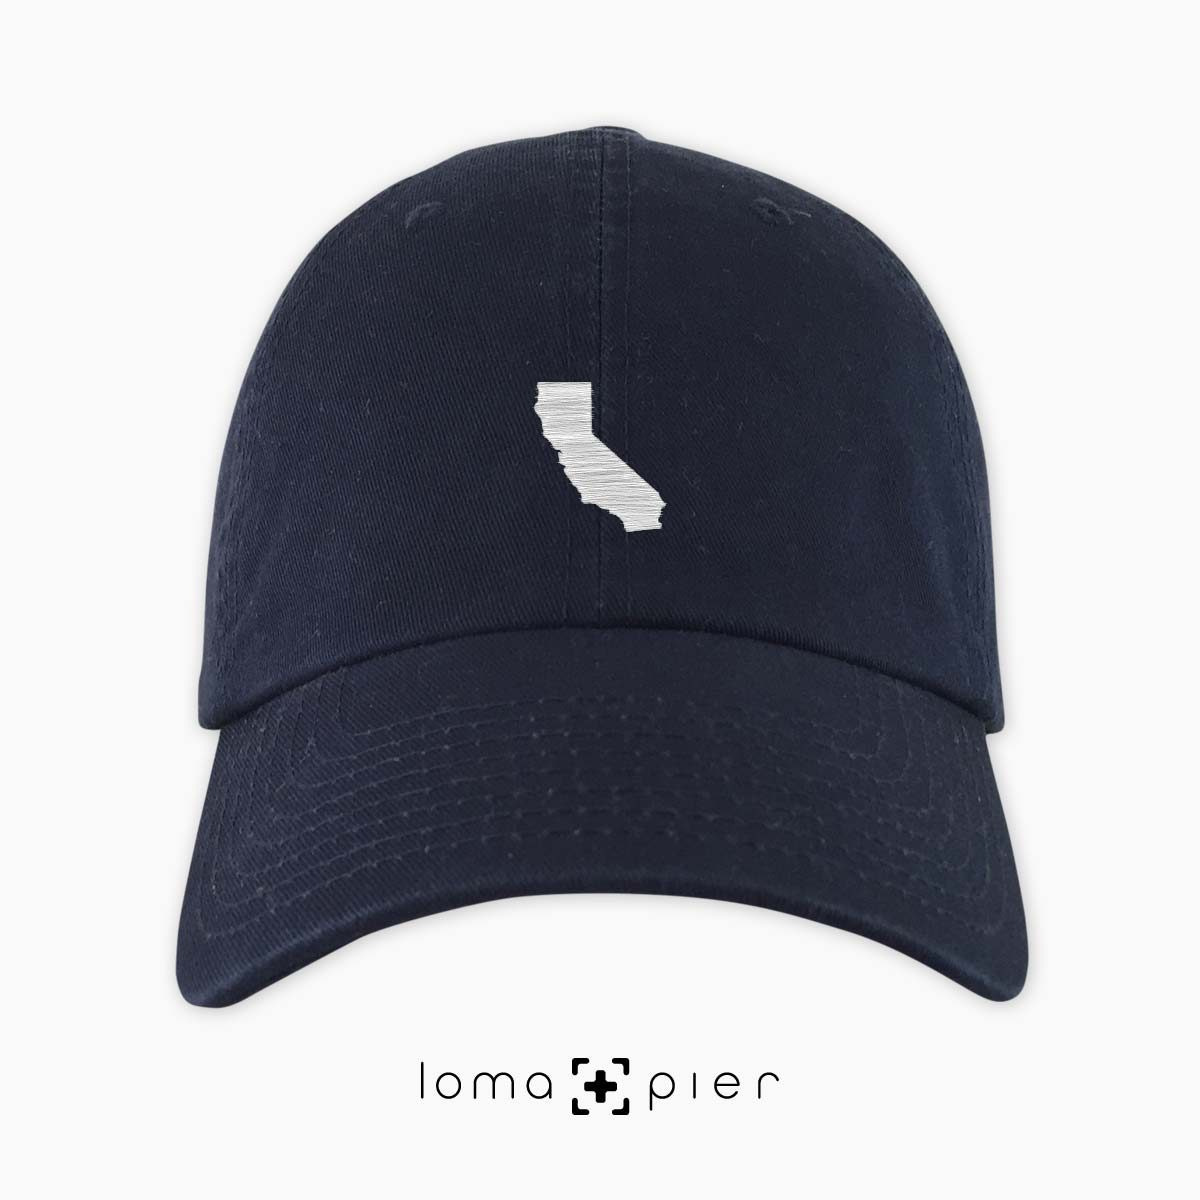 CALIFORNIA silhouette icon embroidered on a navy blue unstructured dad hat by loma+pier hat store made in the USA